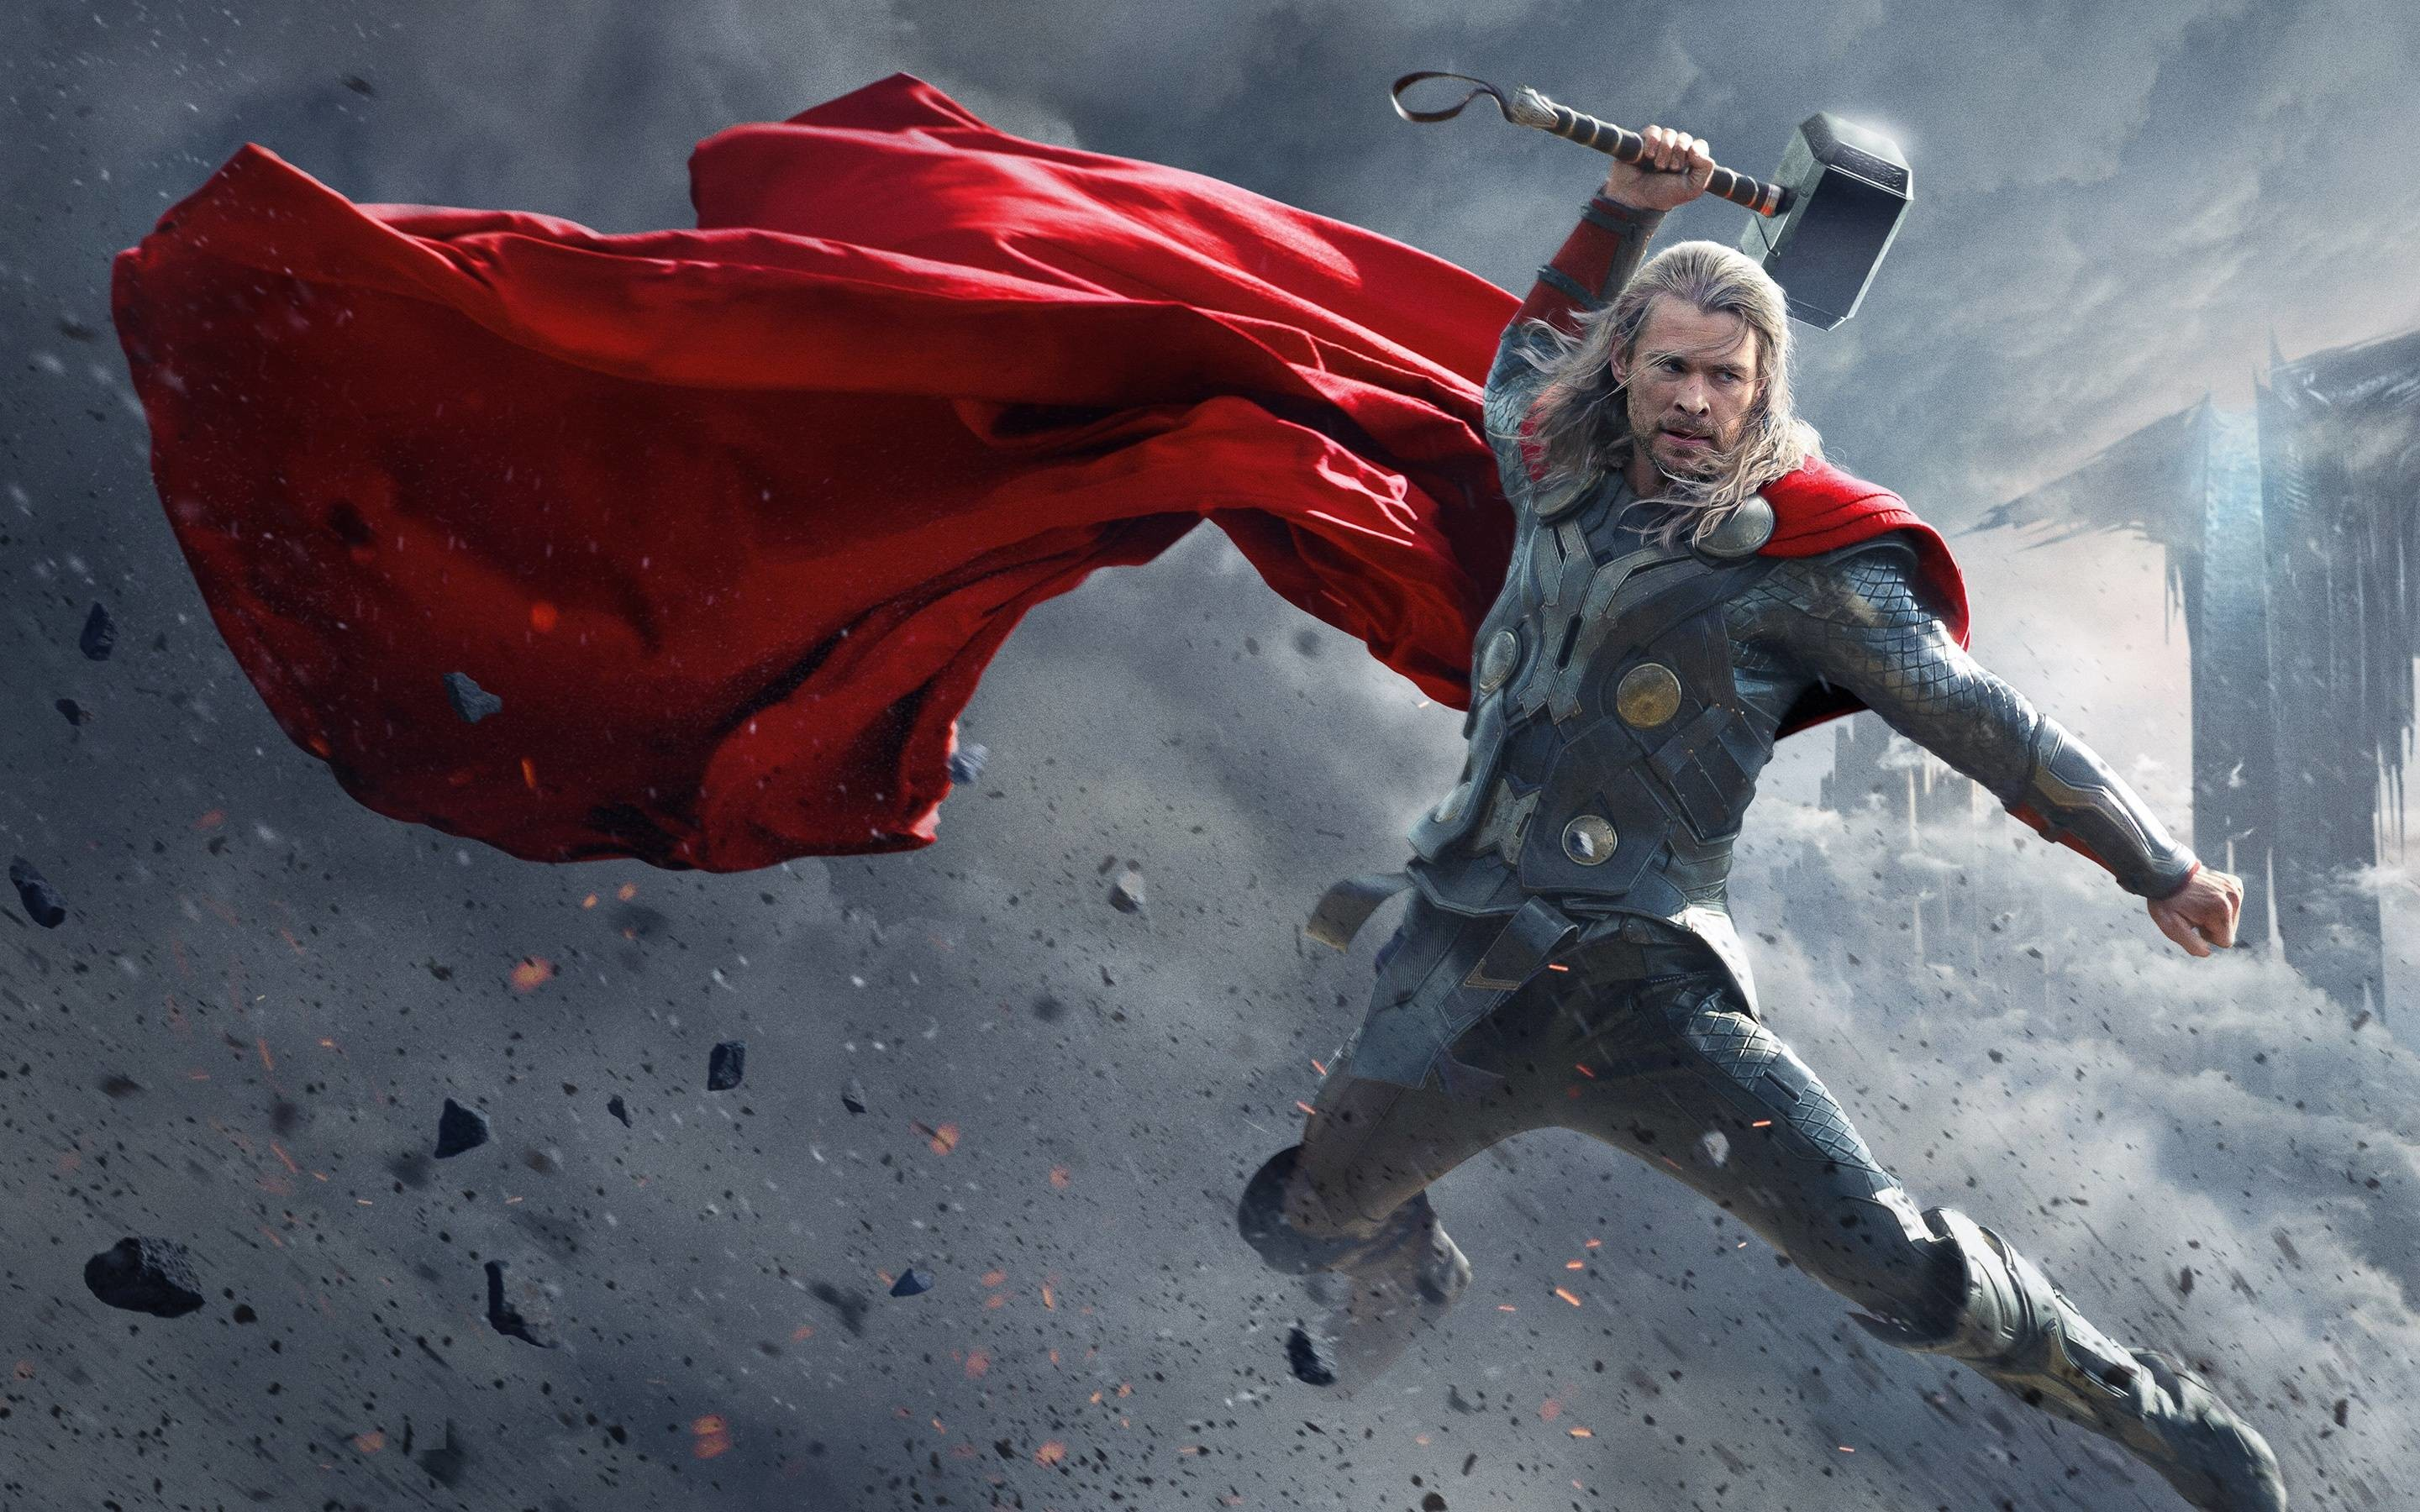 Res: 2880x1800, 2013 Thor The Dark World Wallpapers | HD Wallpapers